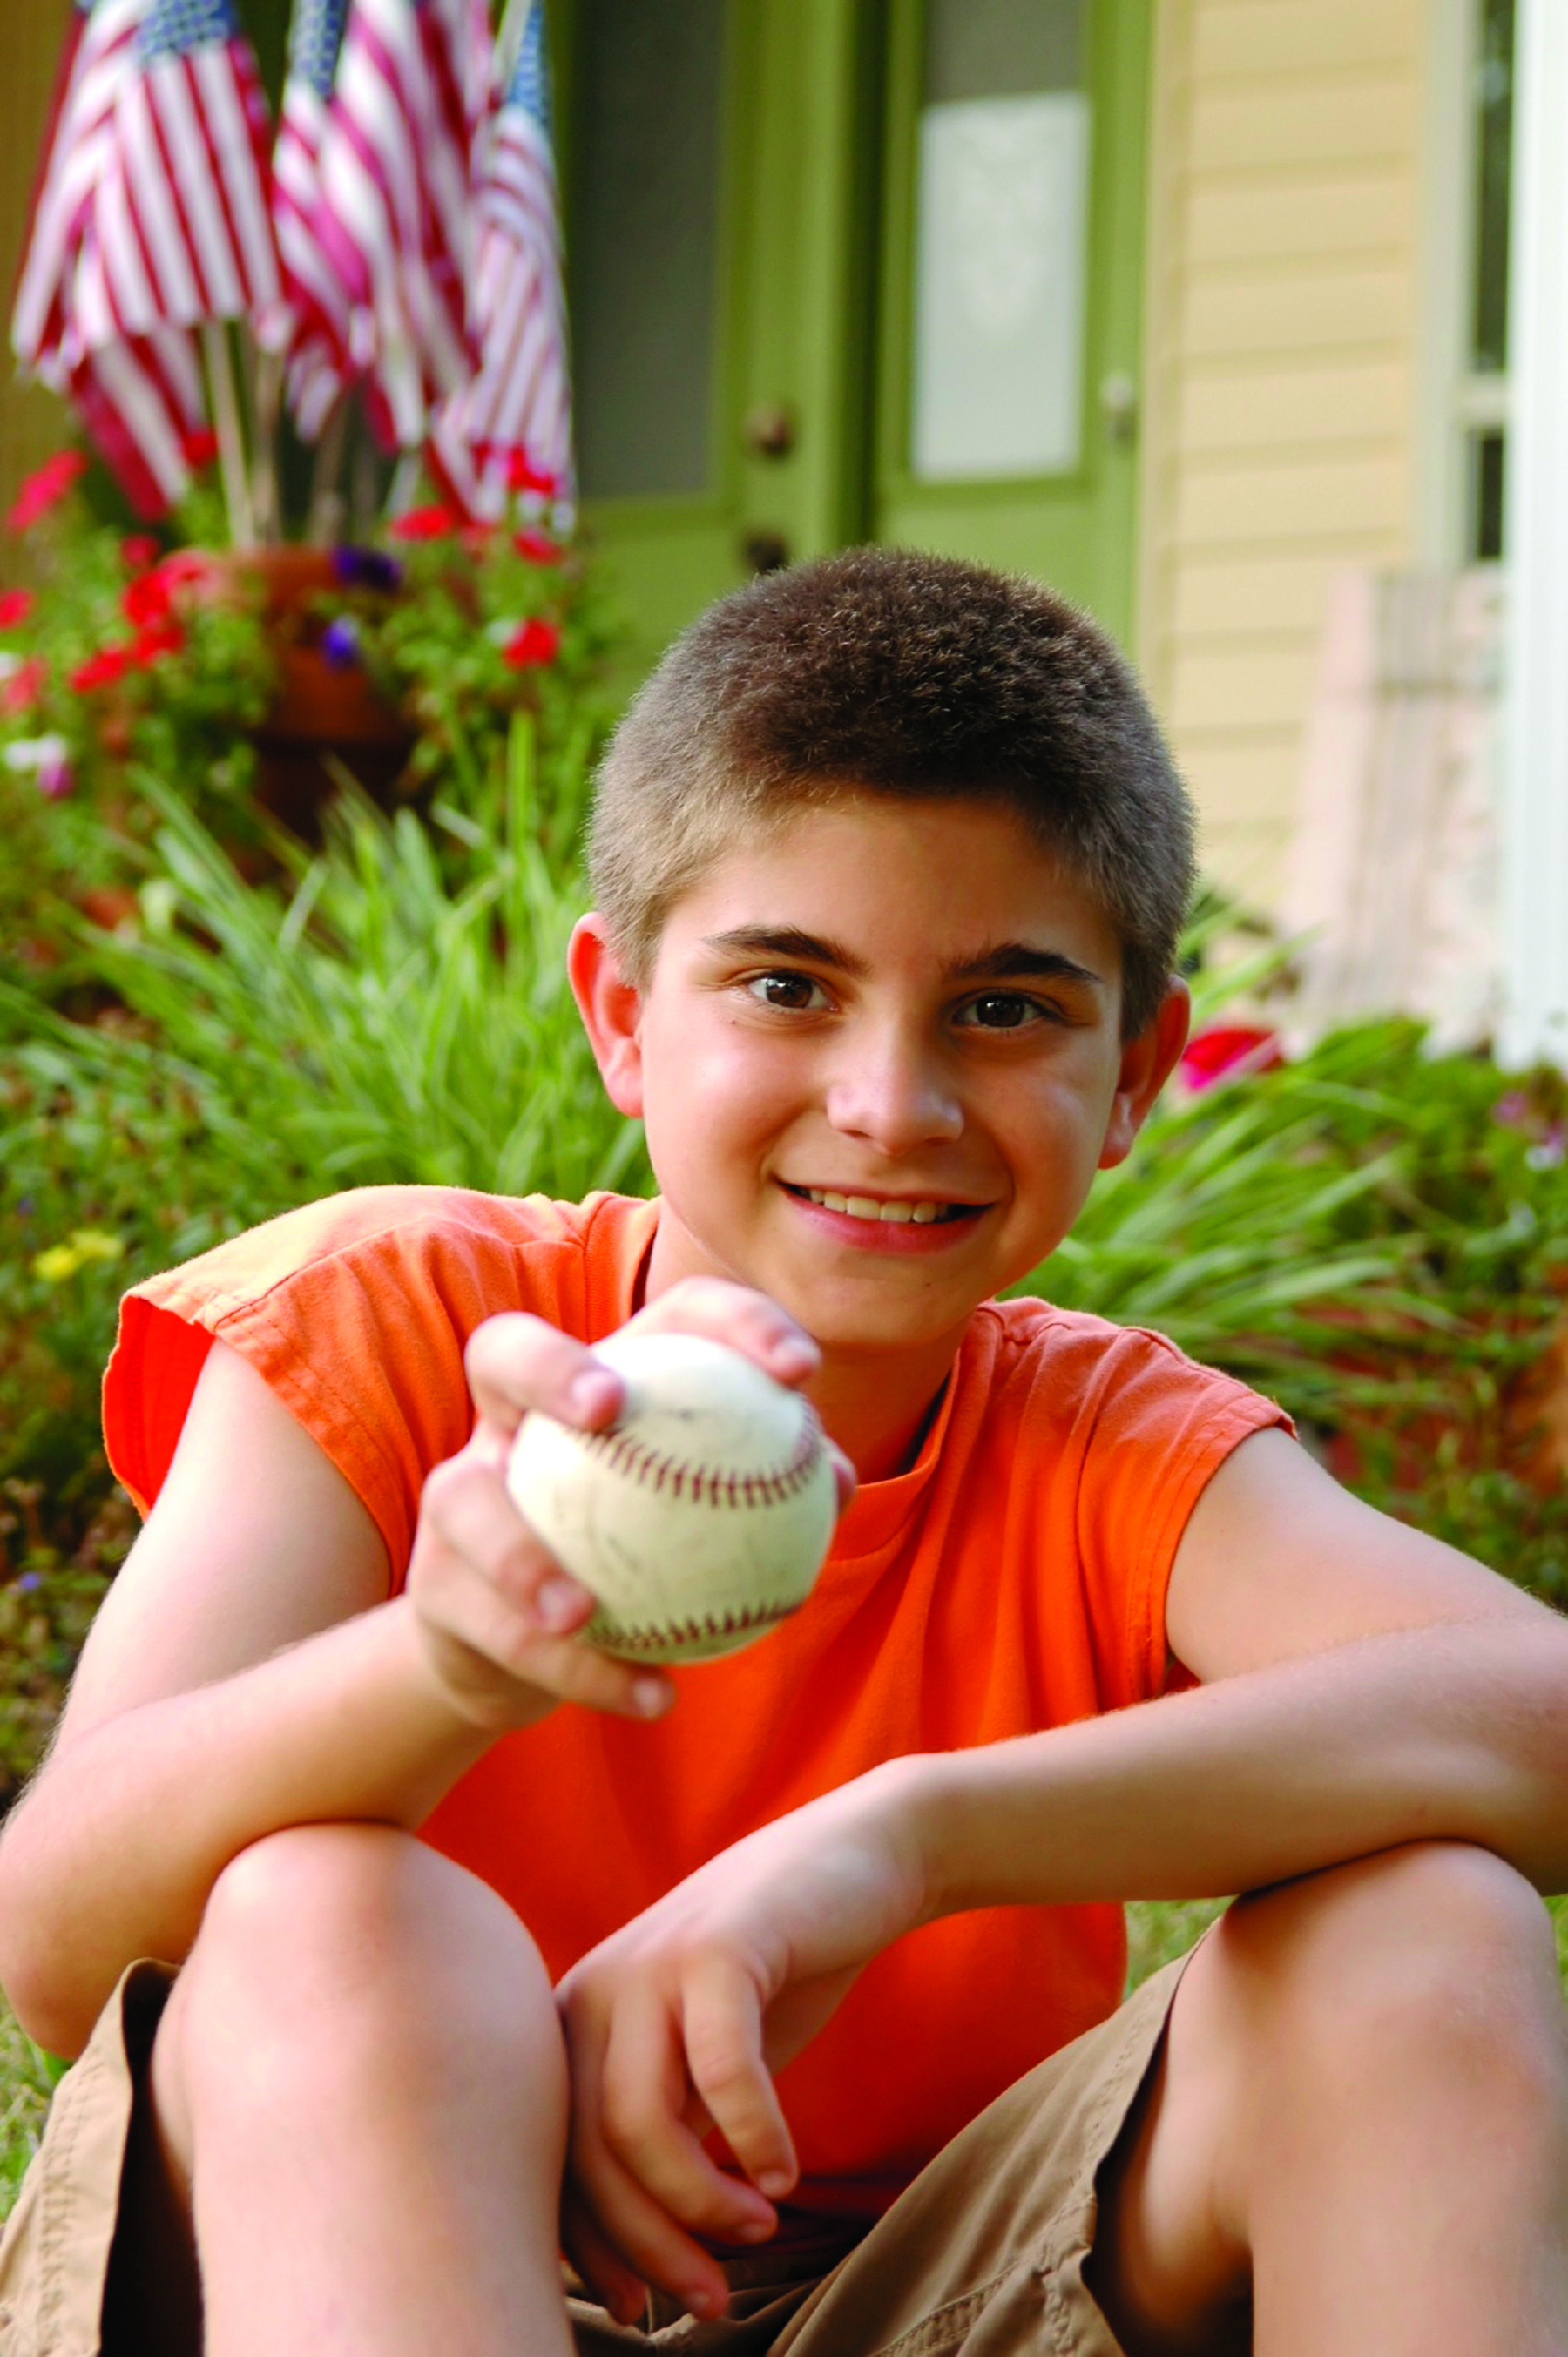 Boy holding baseball